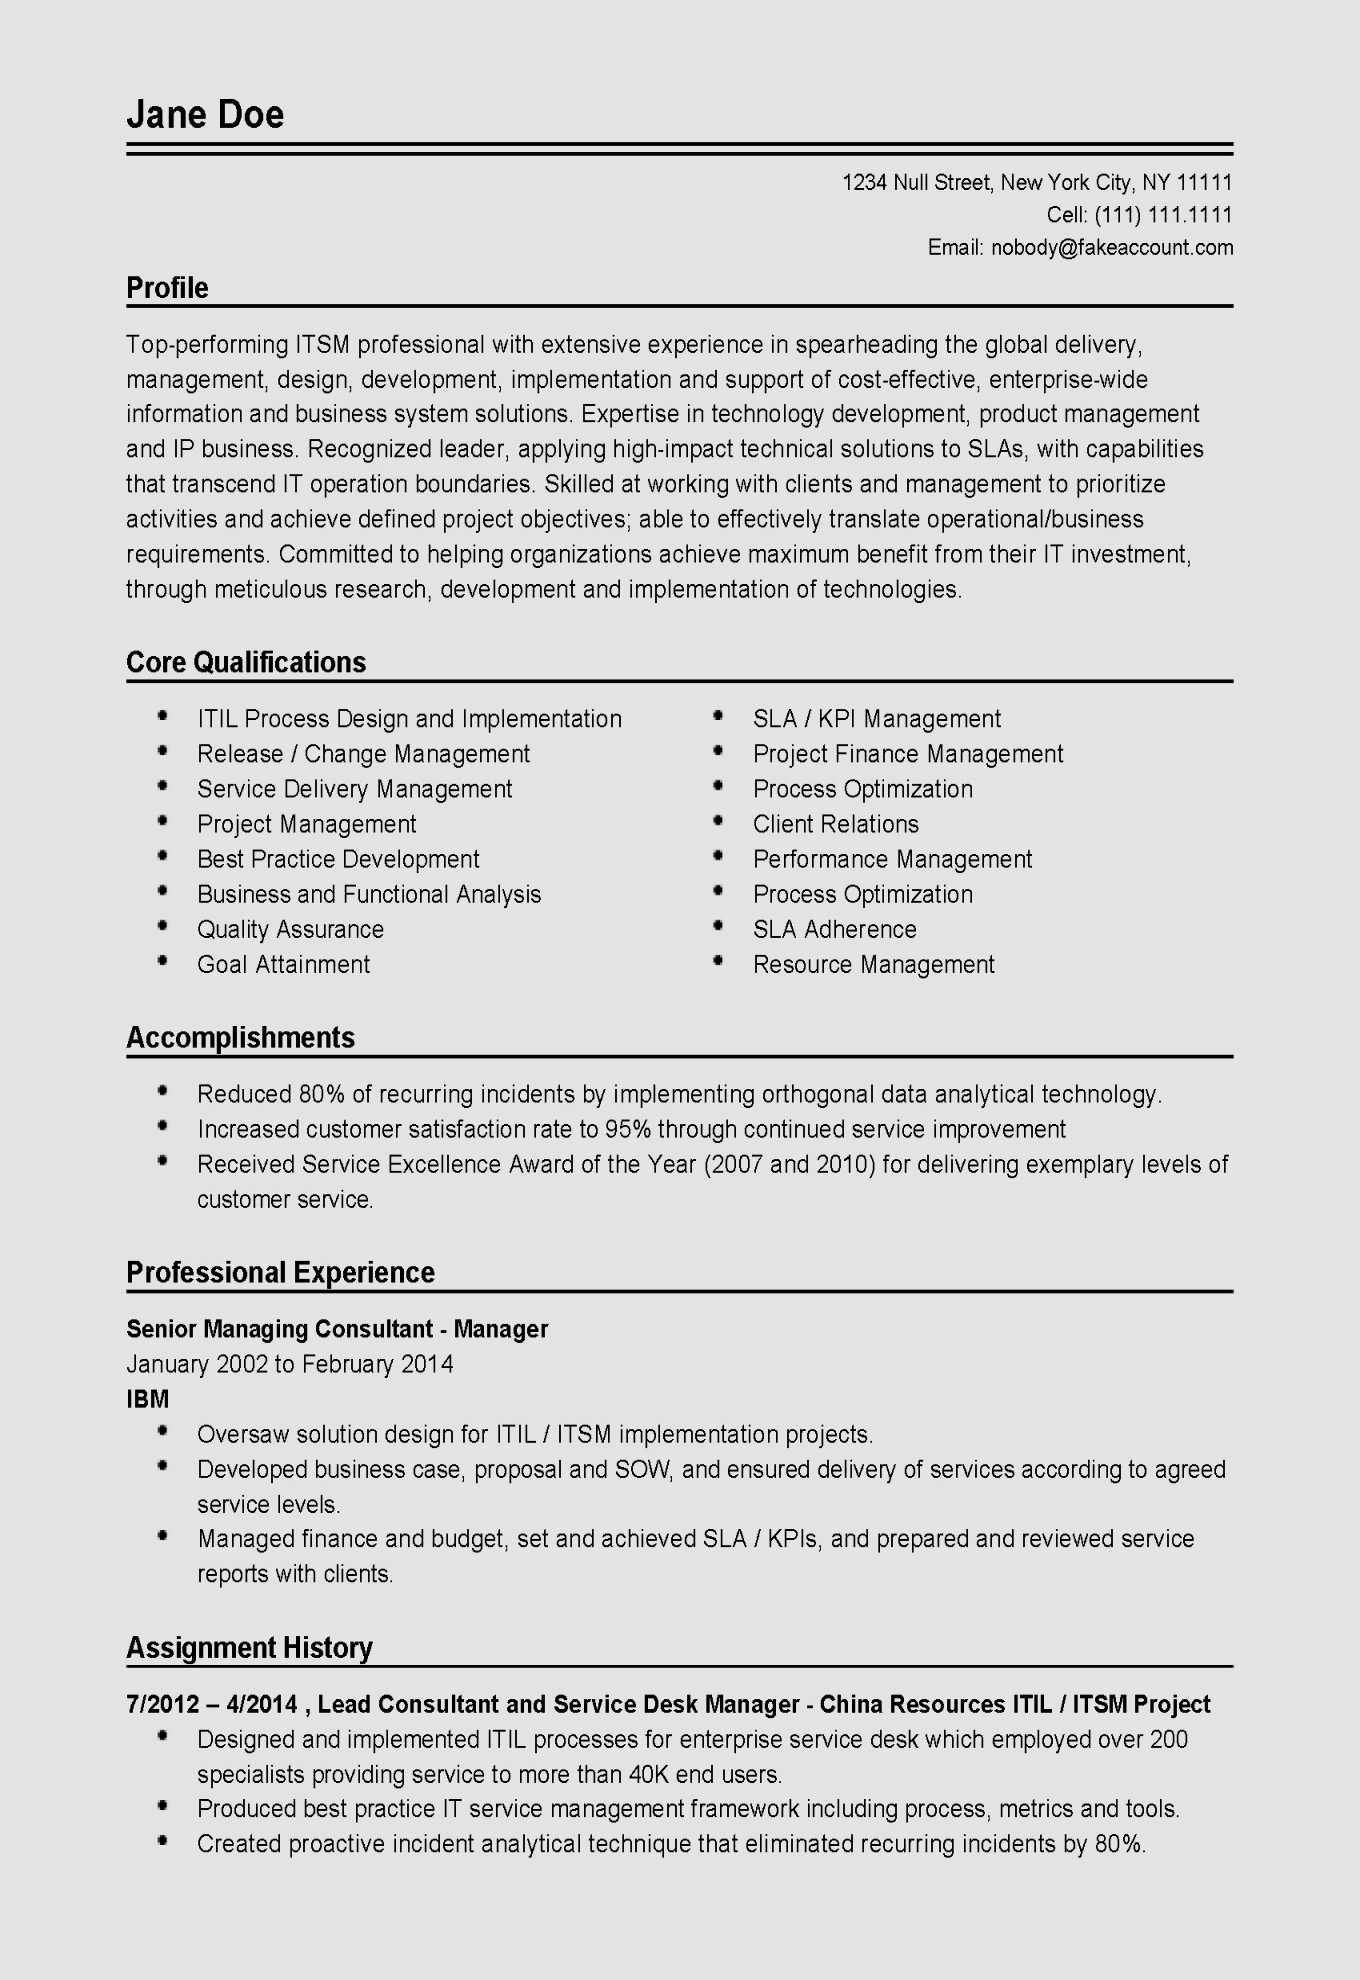 Professional Resume Outline - 18 top Professionals Resume Template Modern Free Resume Templates